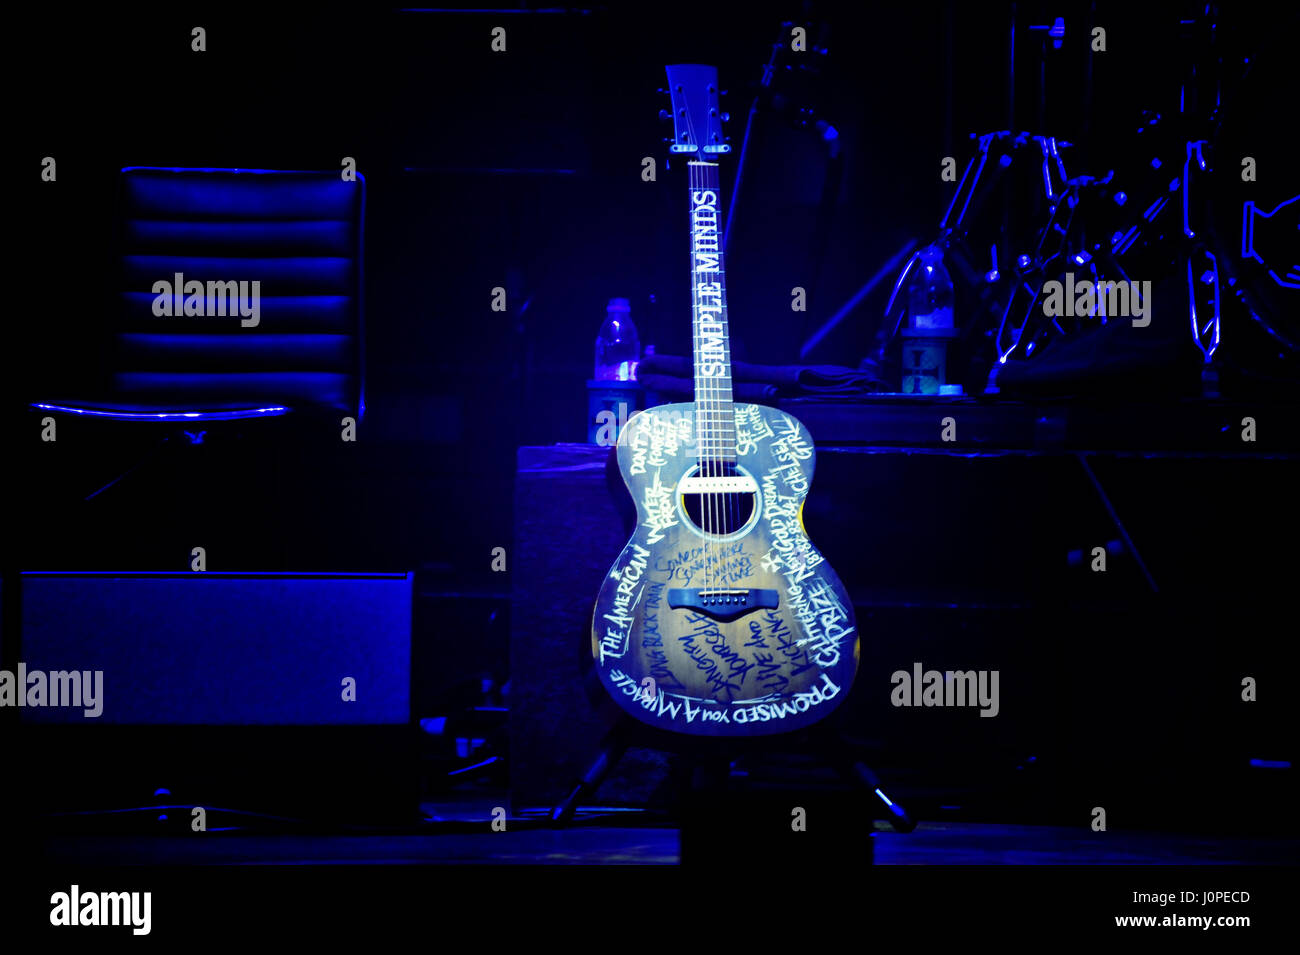 Simple Minds live in Concert, Hamburg, Germany - Stock Image